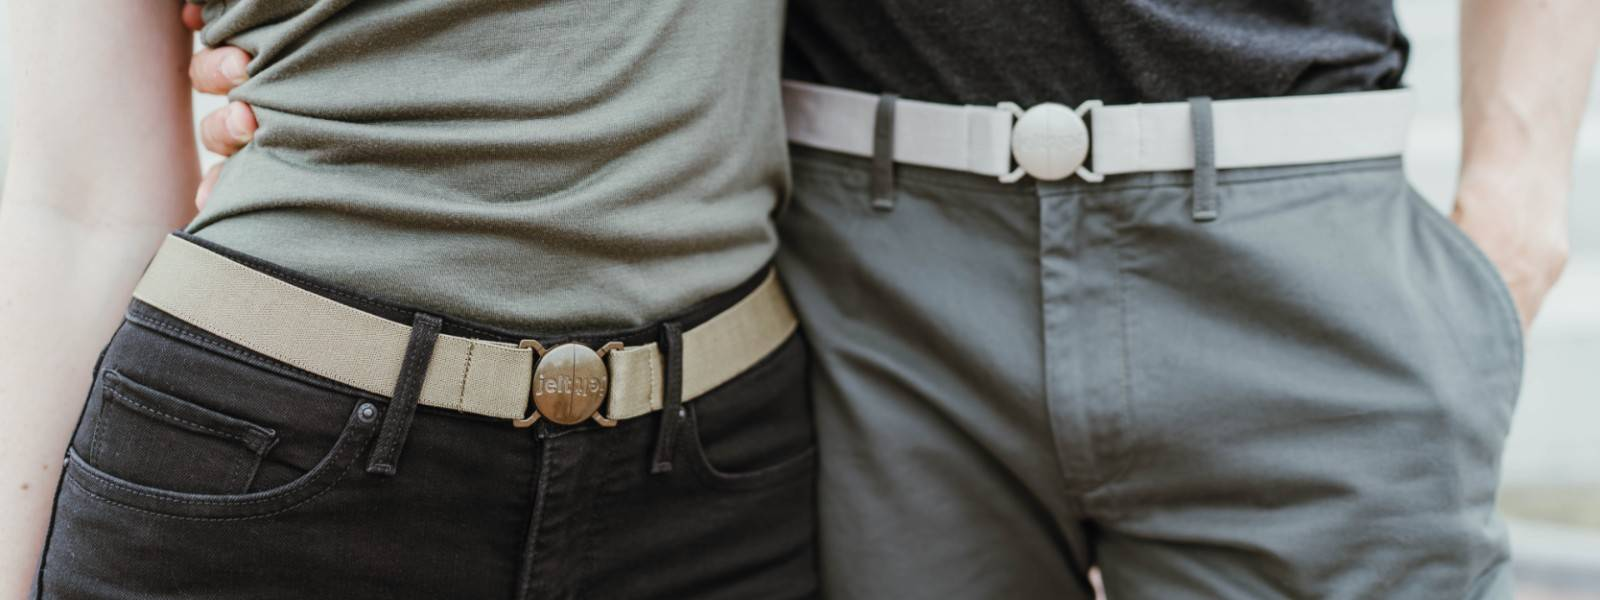 Jelt Belt Khaki Collection featuring Khaki Green and Khaki Tan elastic stretch belts. Pictured on a couple.